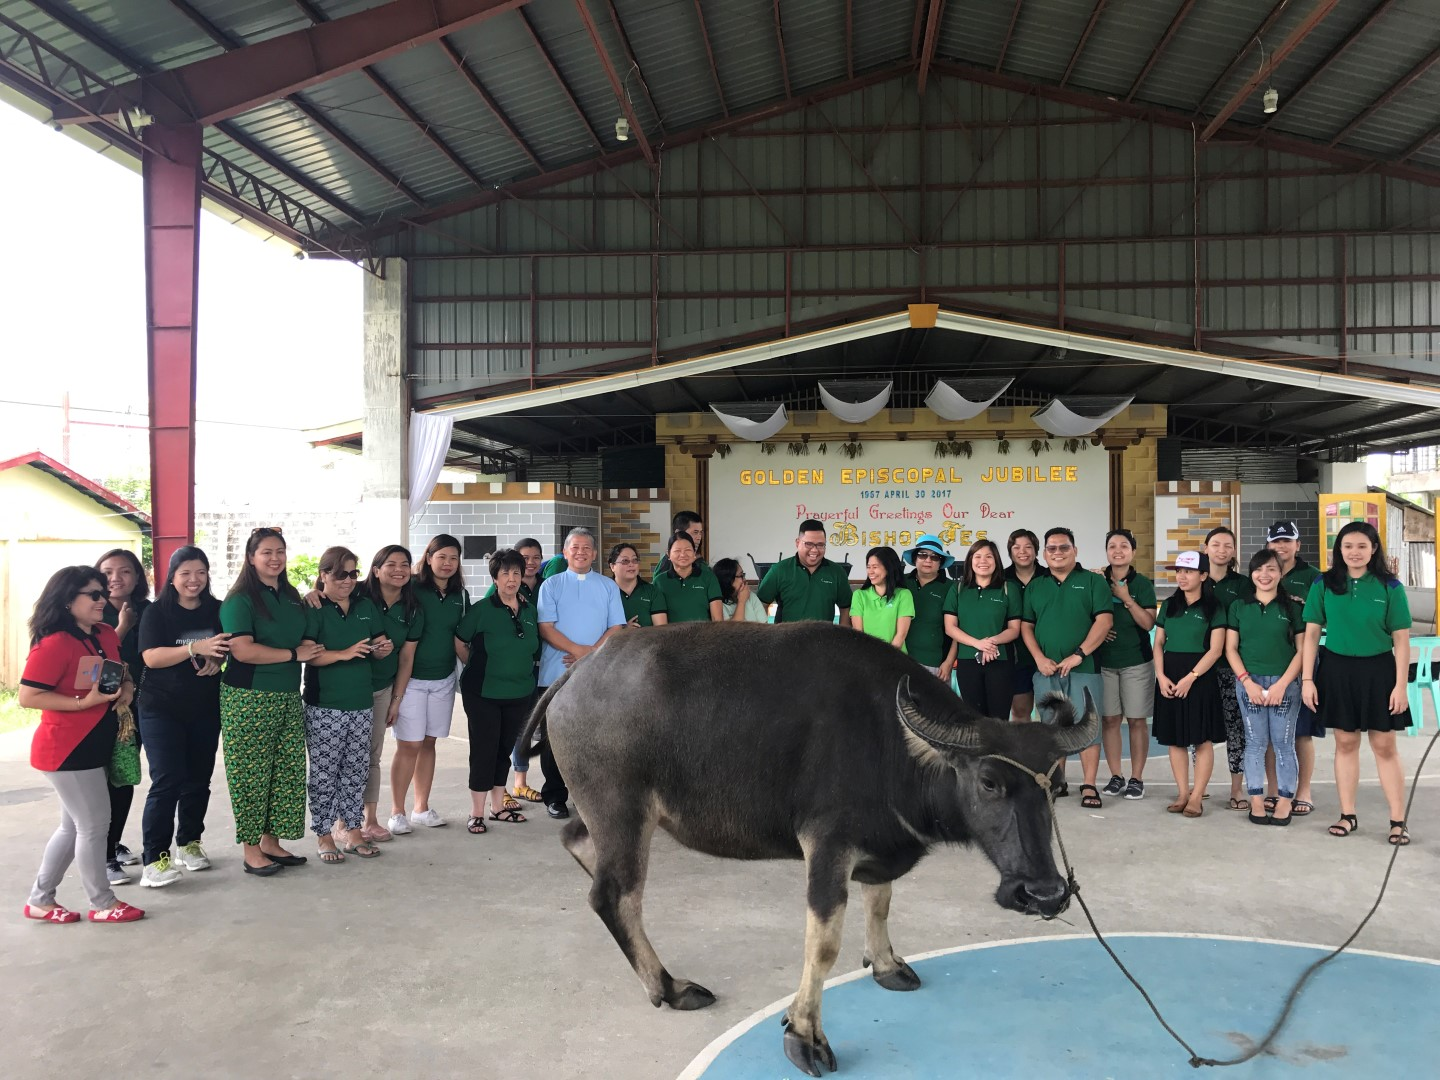 The Coop volunteers led by GM Dina Orosa and Healing Servants Foundation official Fr. Gerald Deveza take a look at the carabao the Coop donated for use by the Divine Healer Academy, the school supported by the foundation, in teaching farming to its older students.